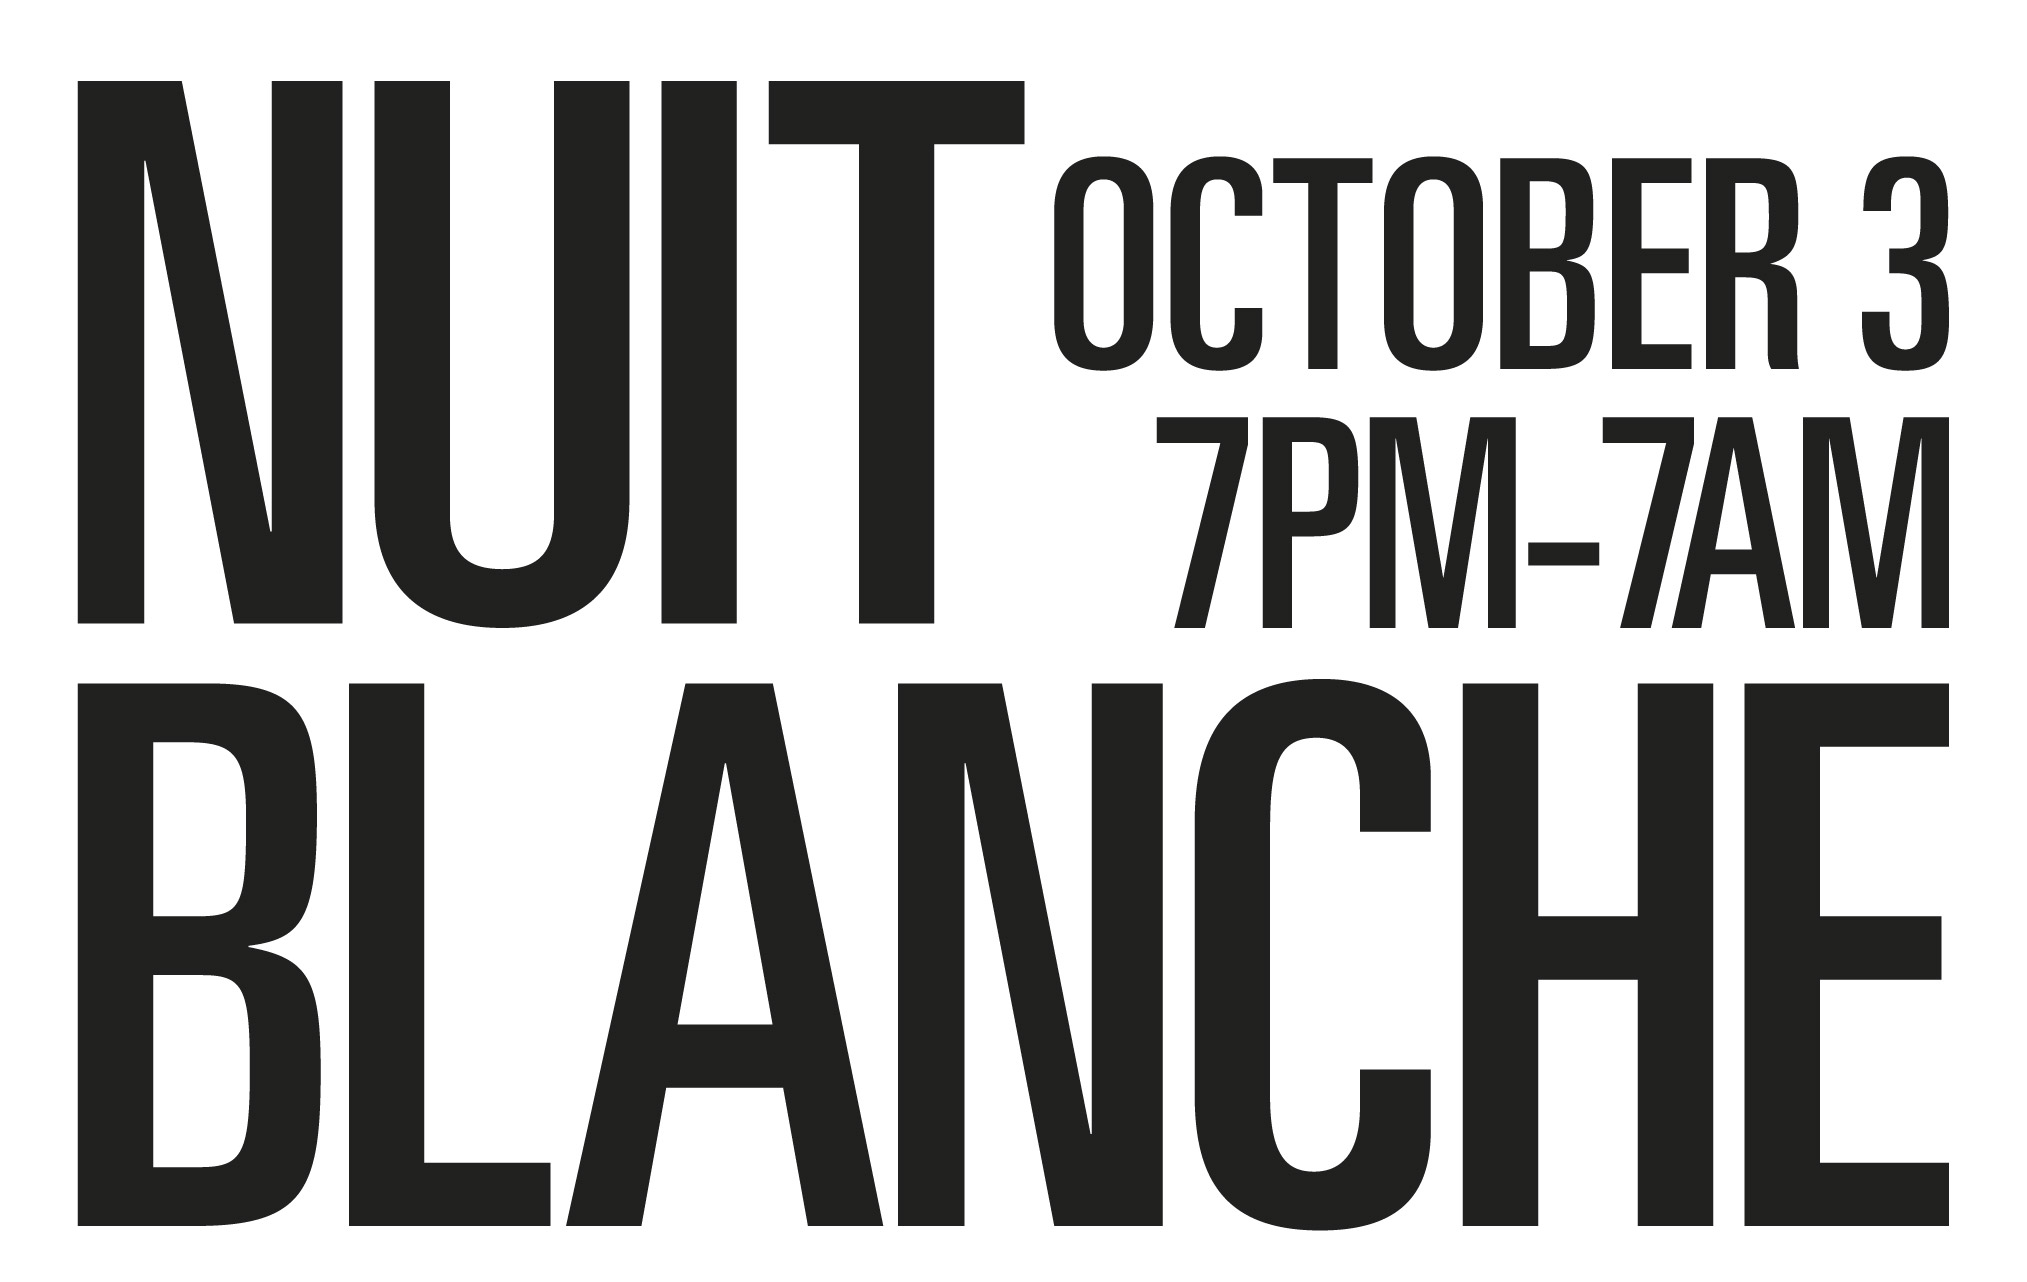 Nuit Blanche October 3 7 pm - 7 am